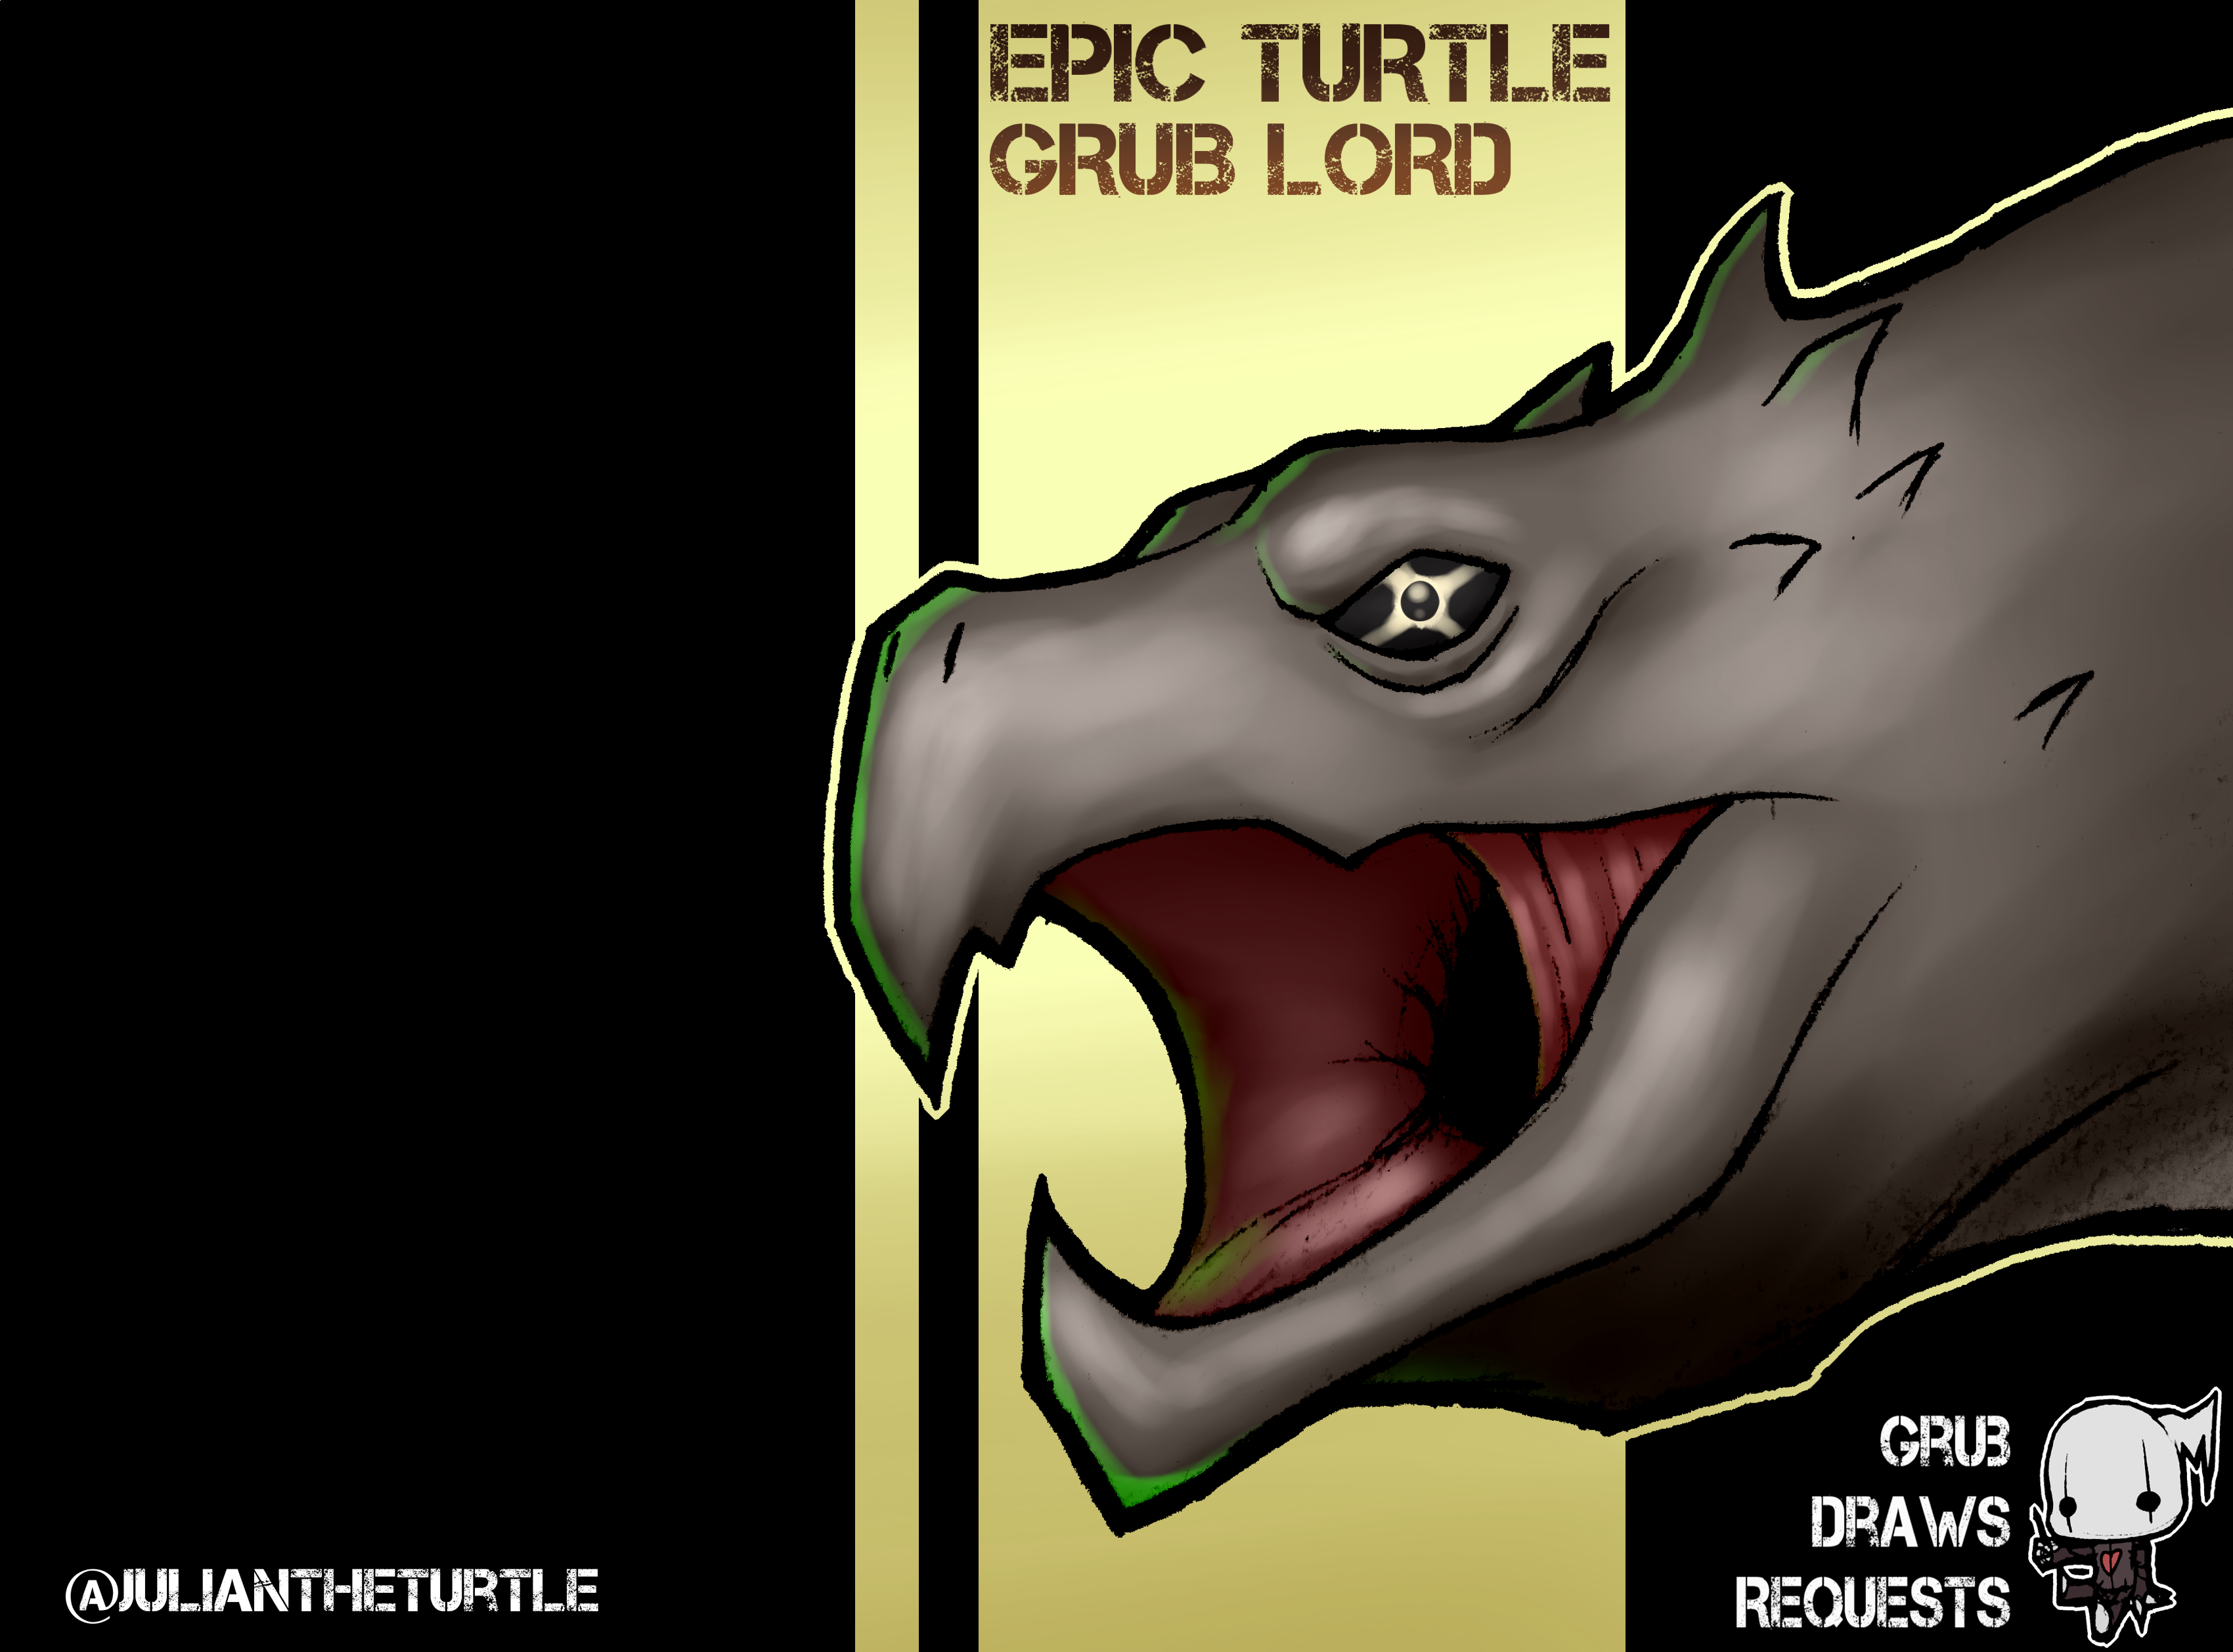 EPIC TURTLE - Request!